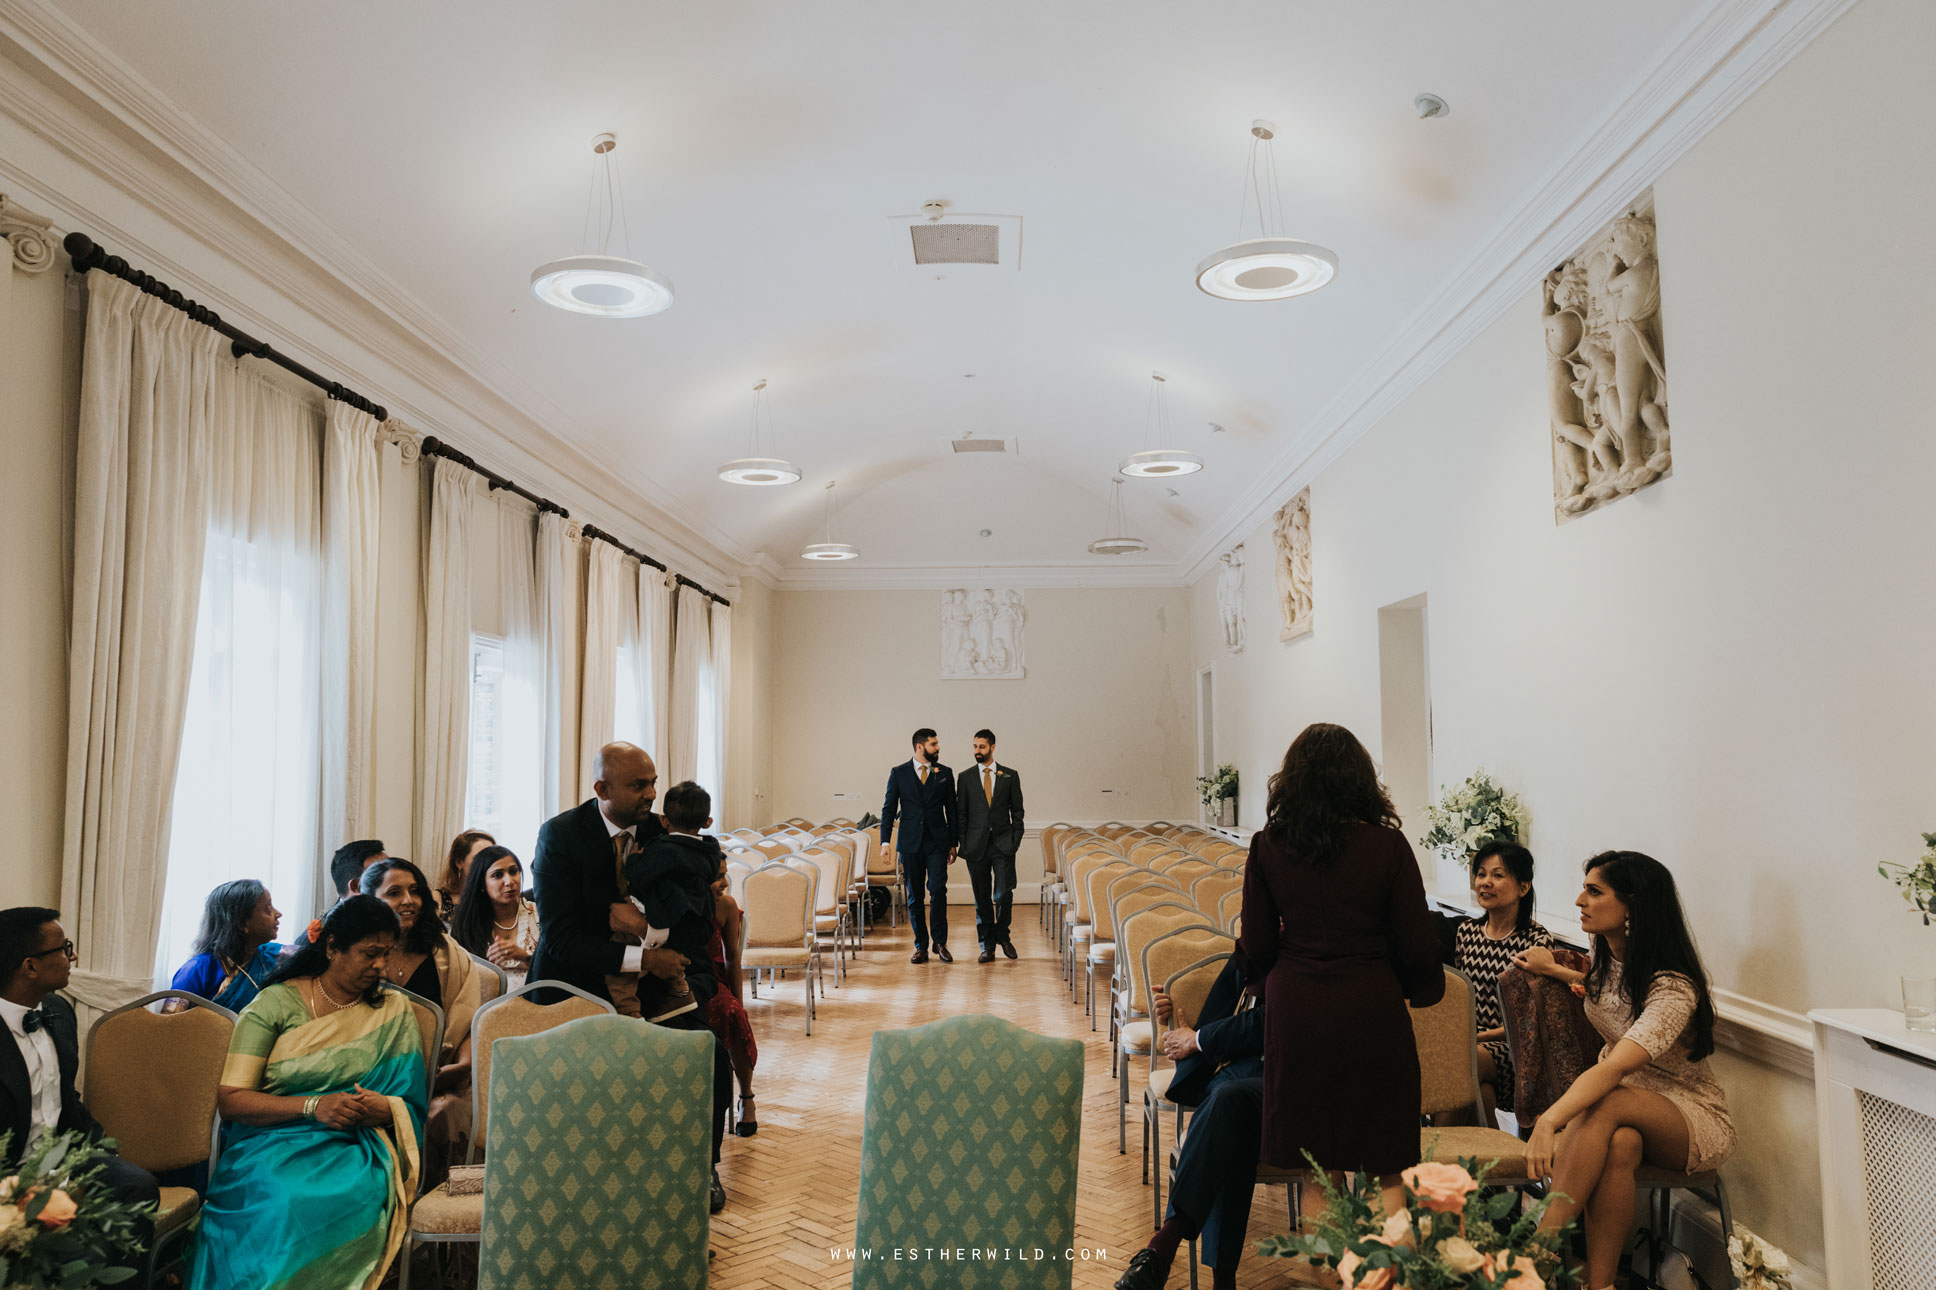 Twickenham_Registry_Office_London_Wedding_Ceremony_Esther_Wild_Photographer_IMG_0323.jpg